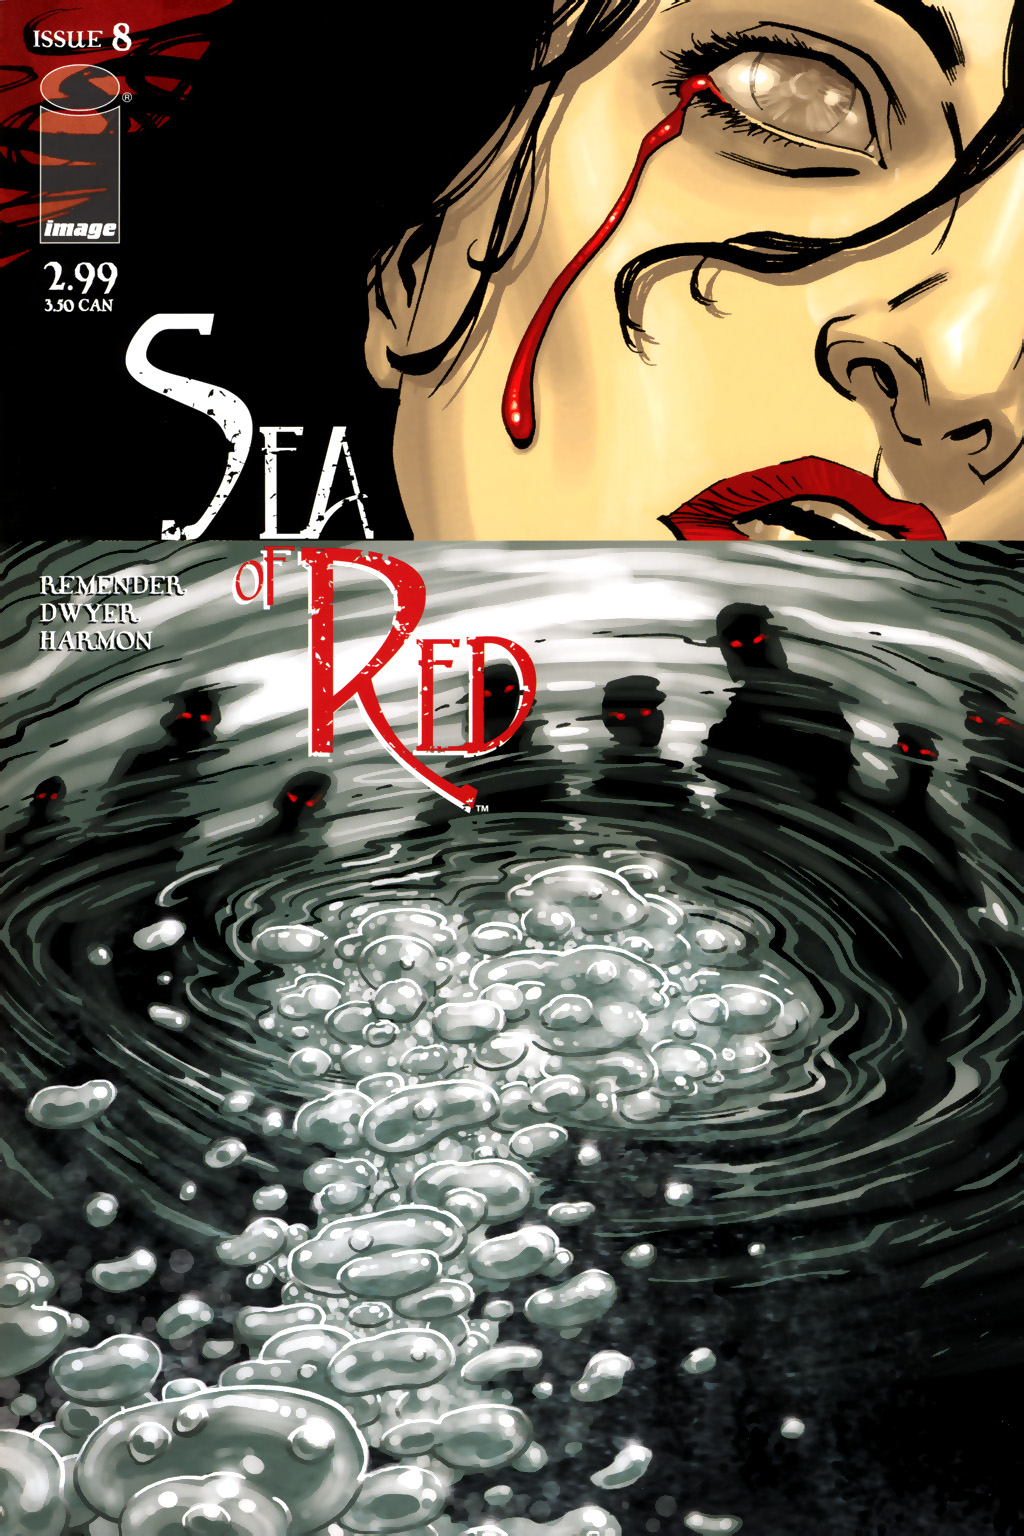 Read online Sea of Red comic -  Issue #8 - 1